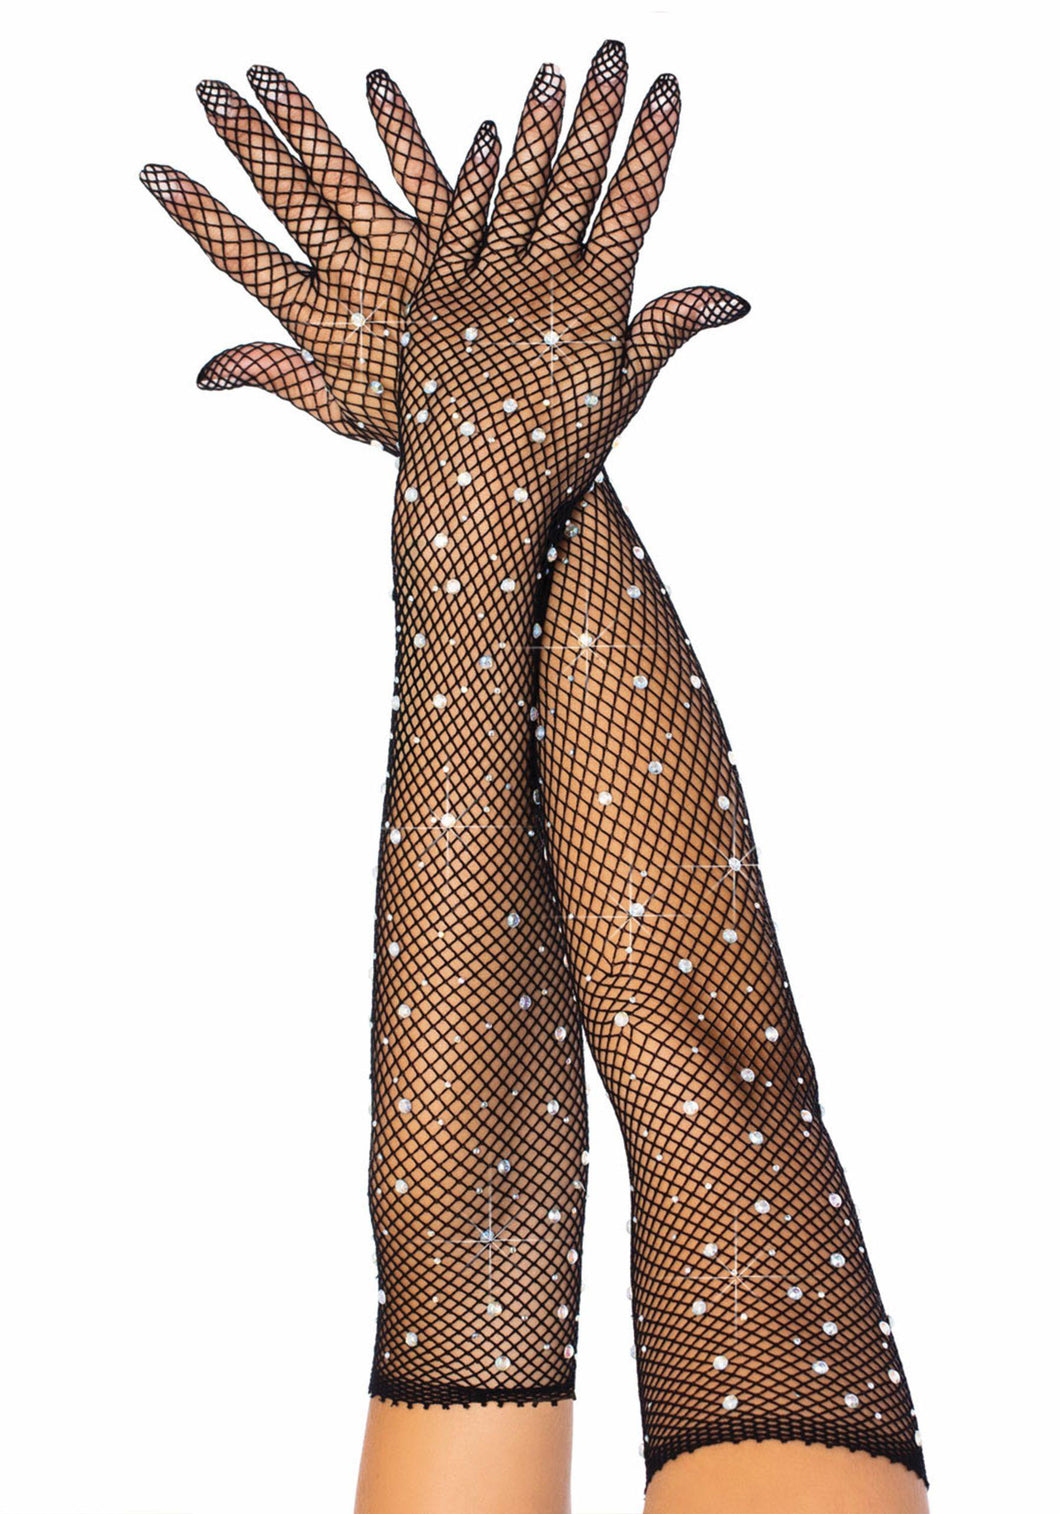 Rhinestone Fishnet Opera-Length Gloves - Amore Lingerie